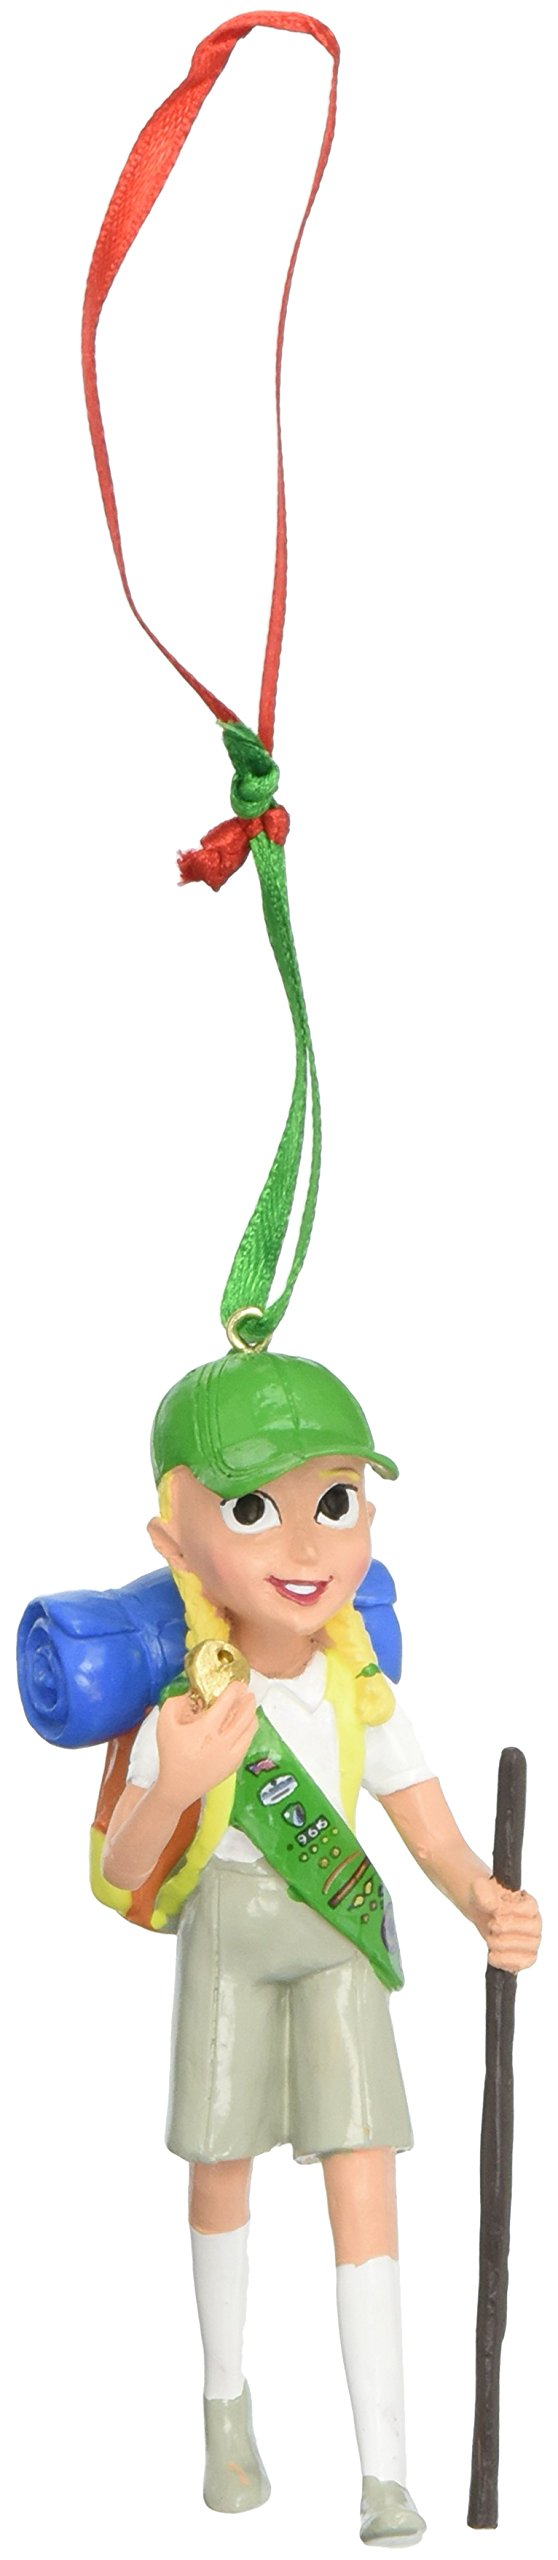 Department 56 Girl Scout Junior Camping Hanging Ornament by Department 56 (Image #1)